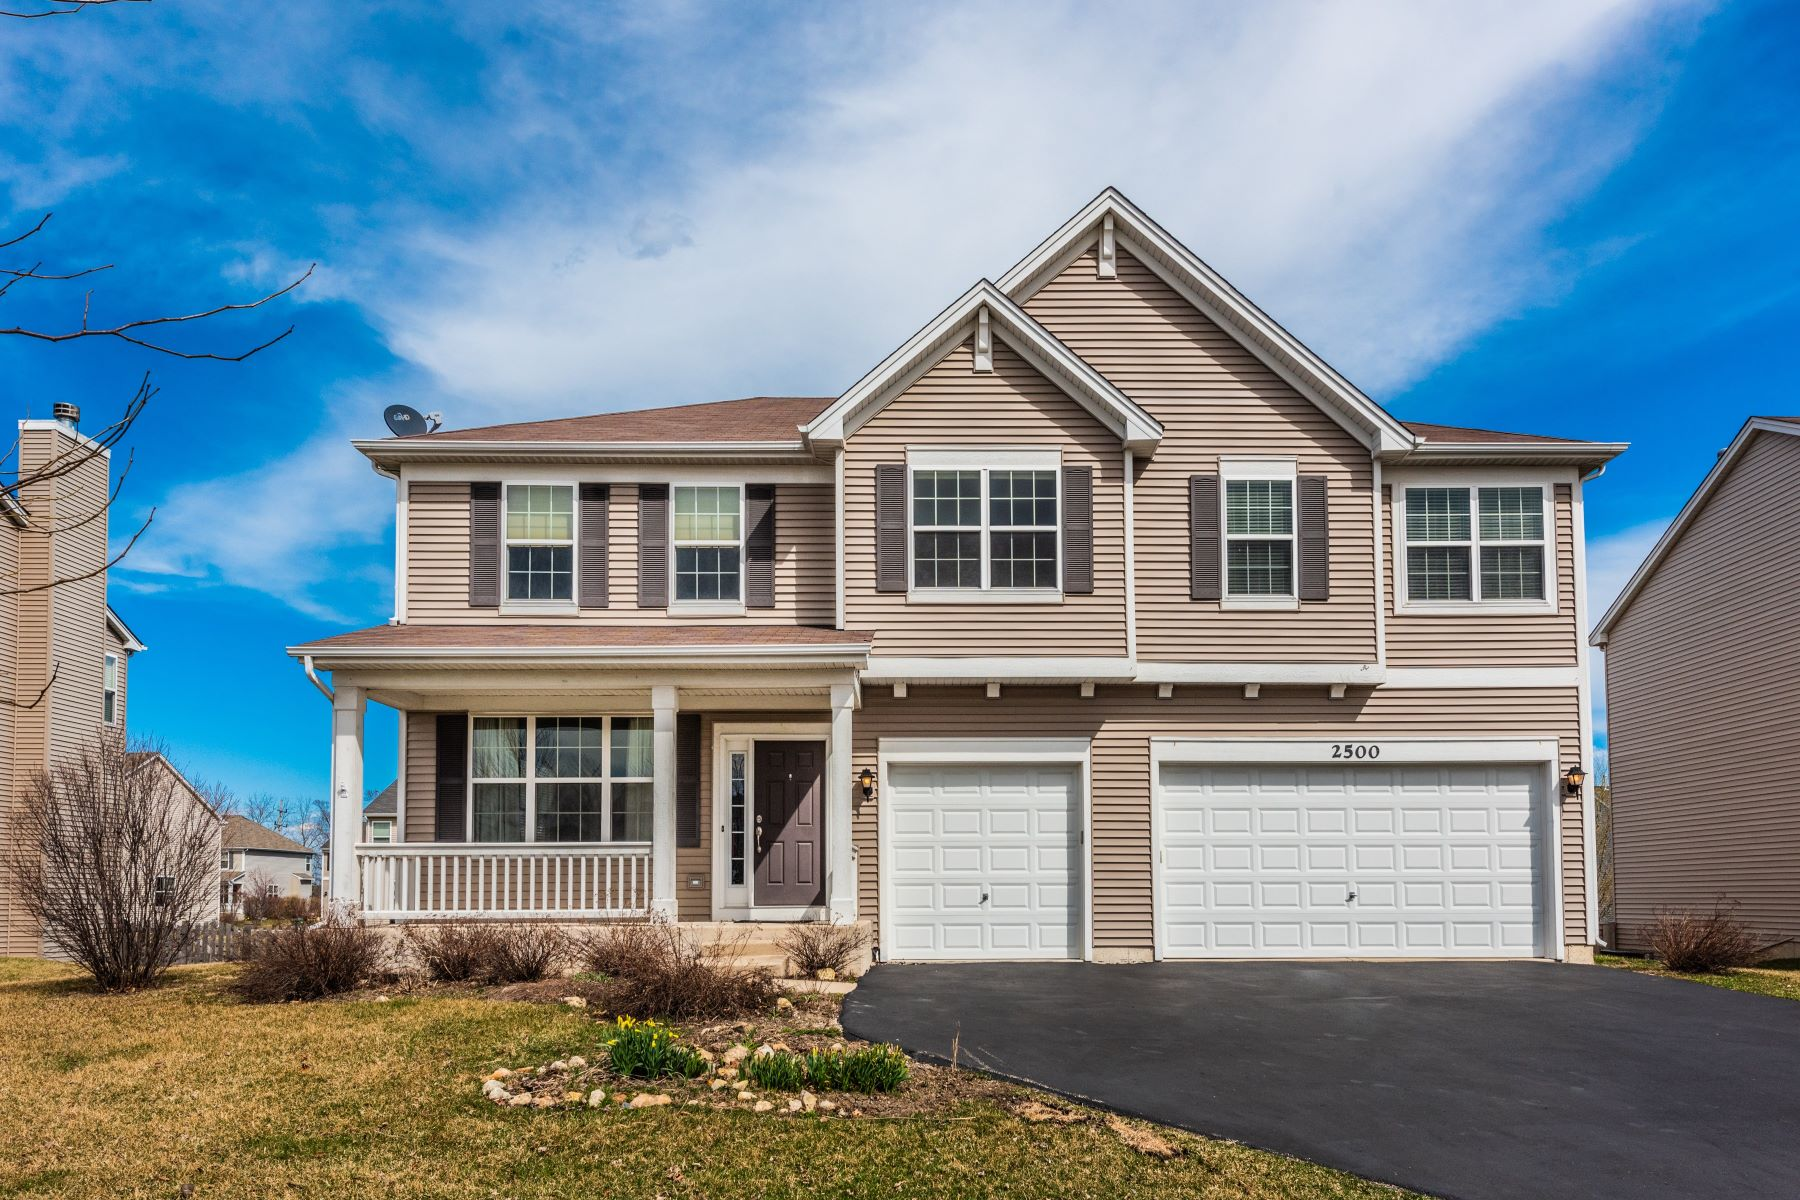 Single Family Homes for Active at Single Family Home In Liberty Lakes East 2500 Goldenrod Way Wauconda, Illinois 60084 United States